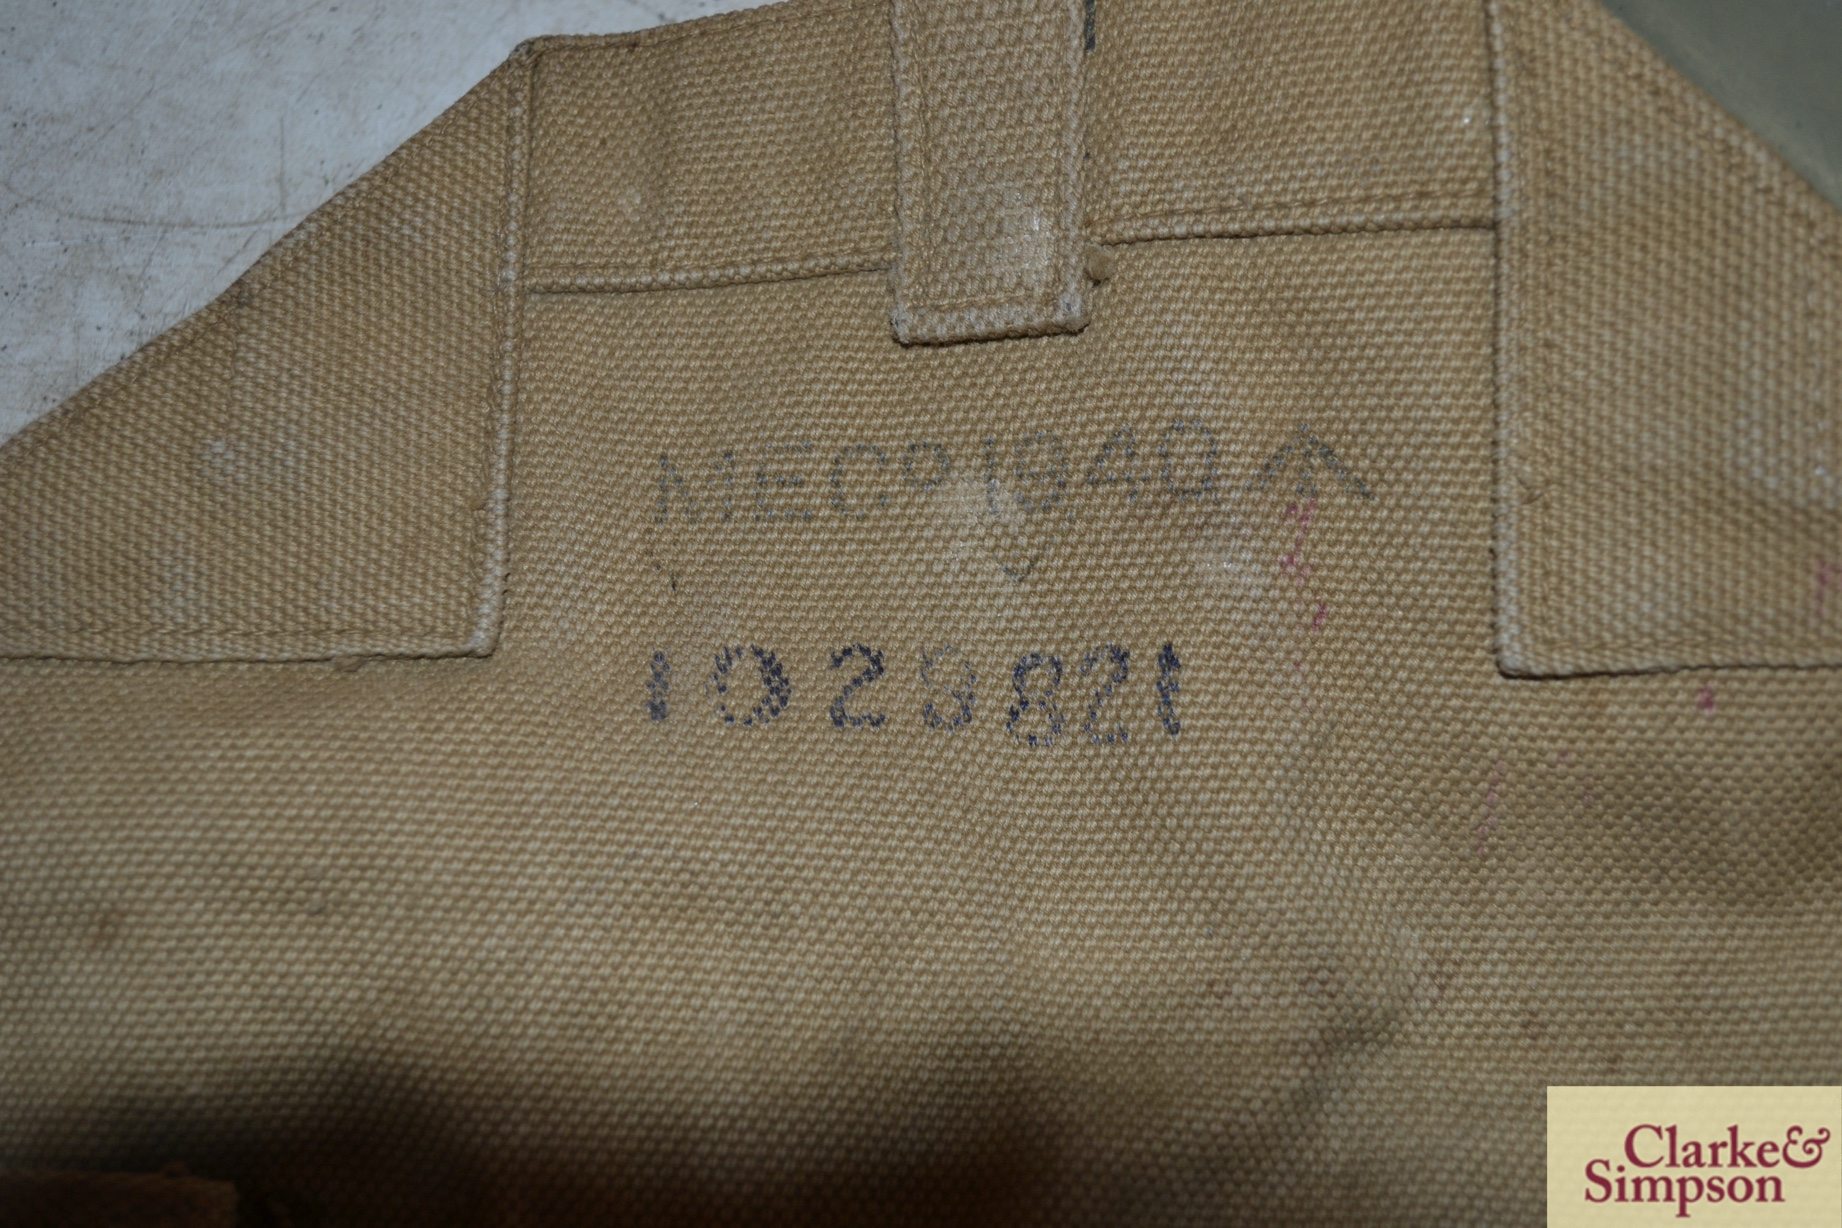 Two ex-war department canvas carrying bags - Image 3 of 7